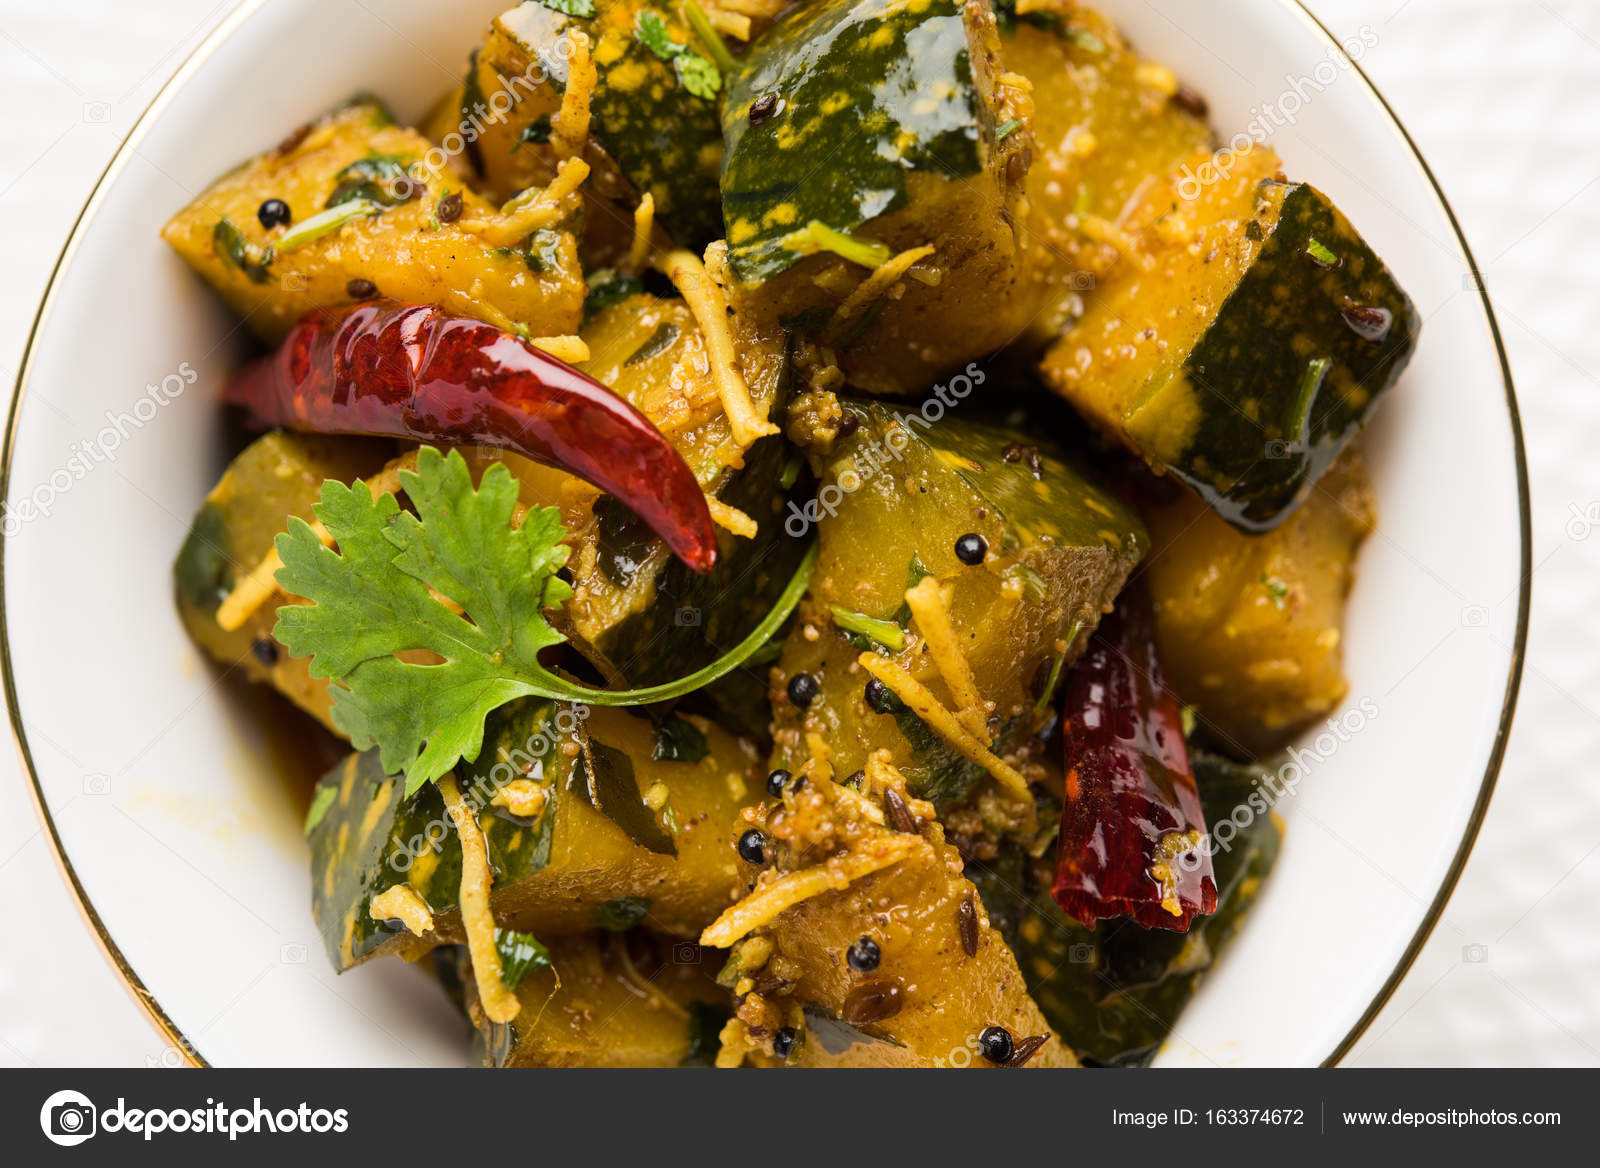 Popular indian main course vegetable pumpkin dry curry or kaddooor popular indian main course vegetable pumpkin dry curry or kaddooor kaddu ki sabzi in hindi forumfinder Images